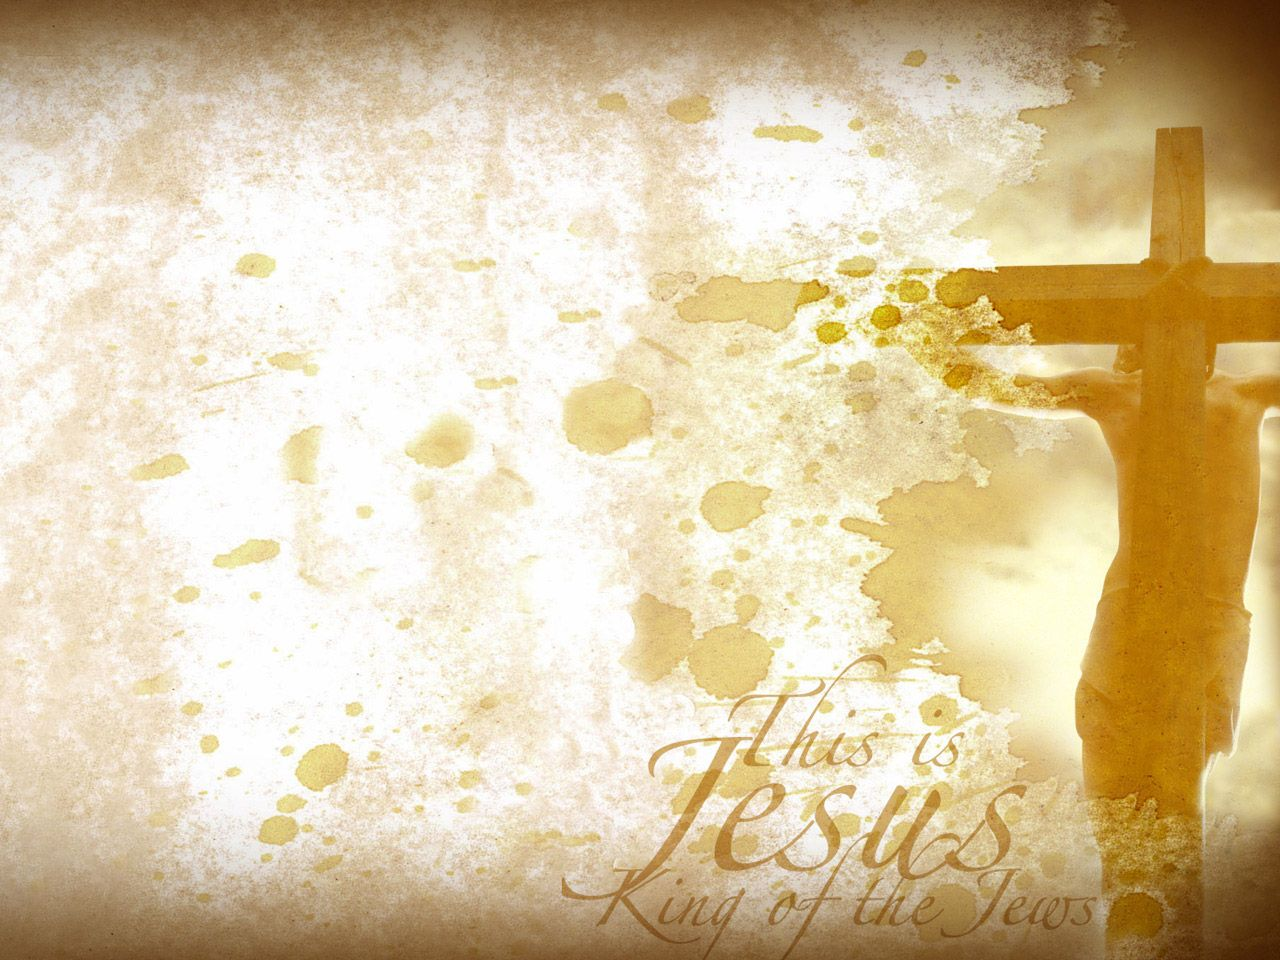 Christian Powerpoint Backgrounds Worship quality free 1280×960 ...